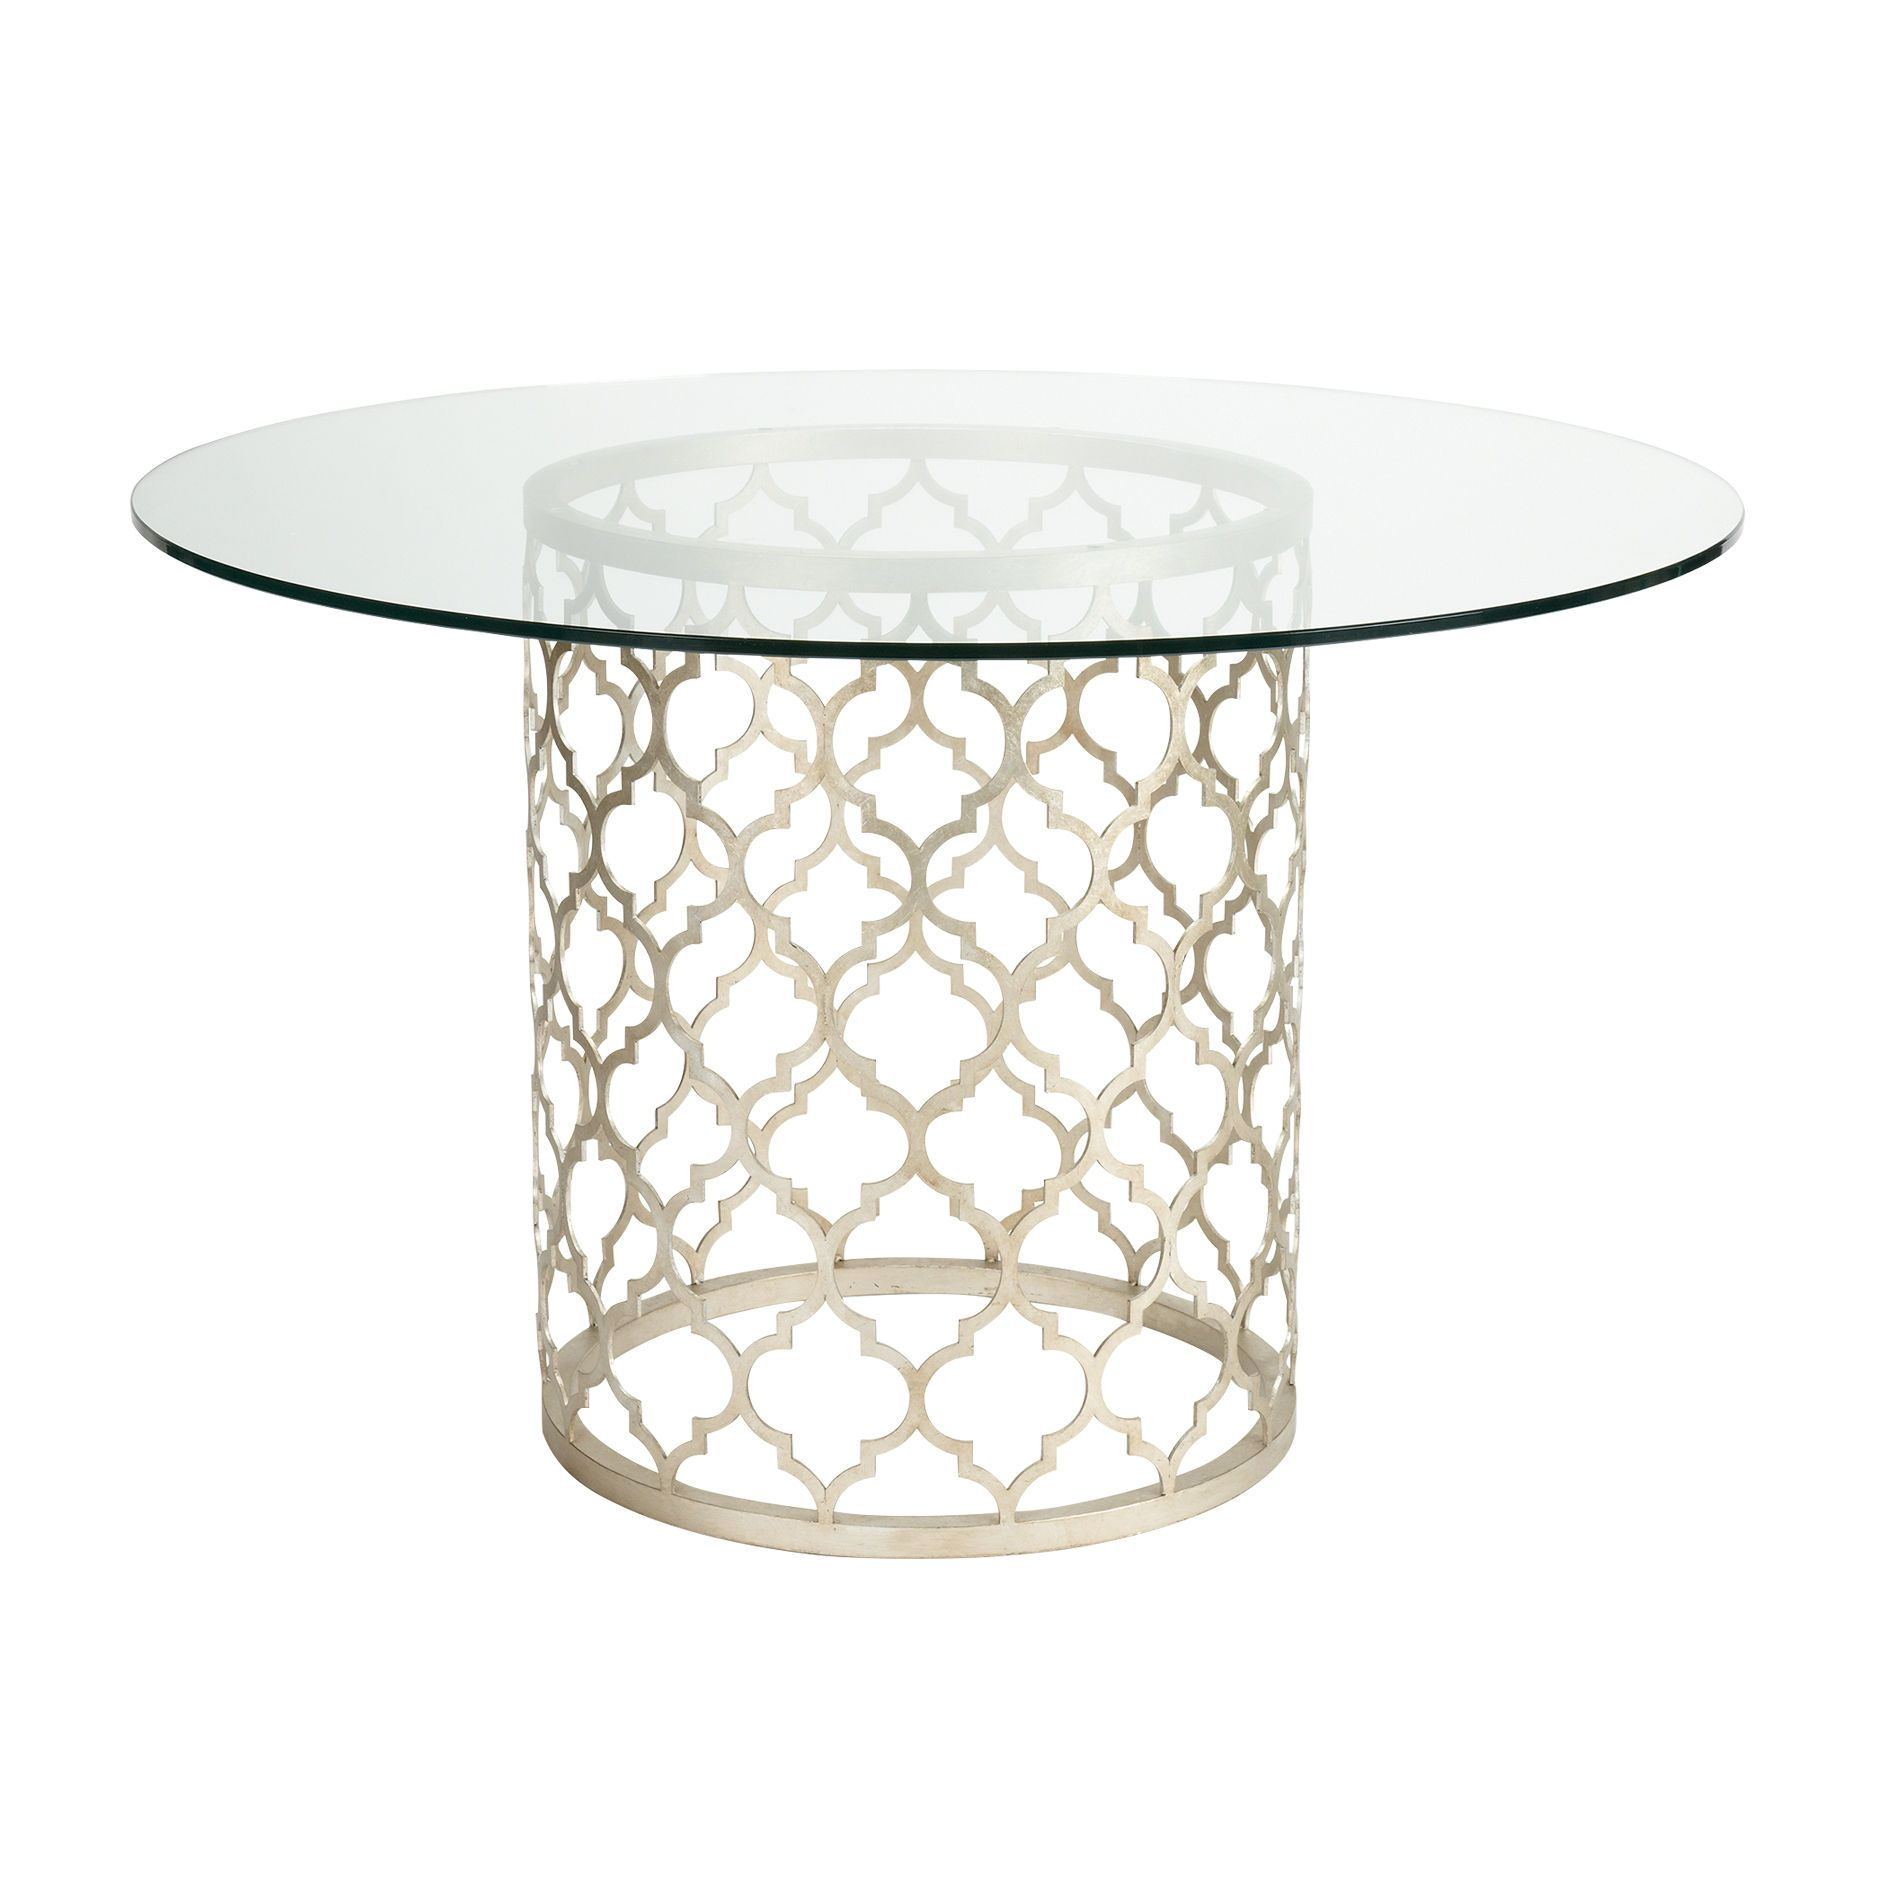 tracery dining table ethan allen us round glass dining tables metal and glass dining tables. Black Bedroom Furniture Sets. Home Design Ideas